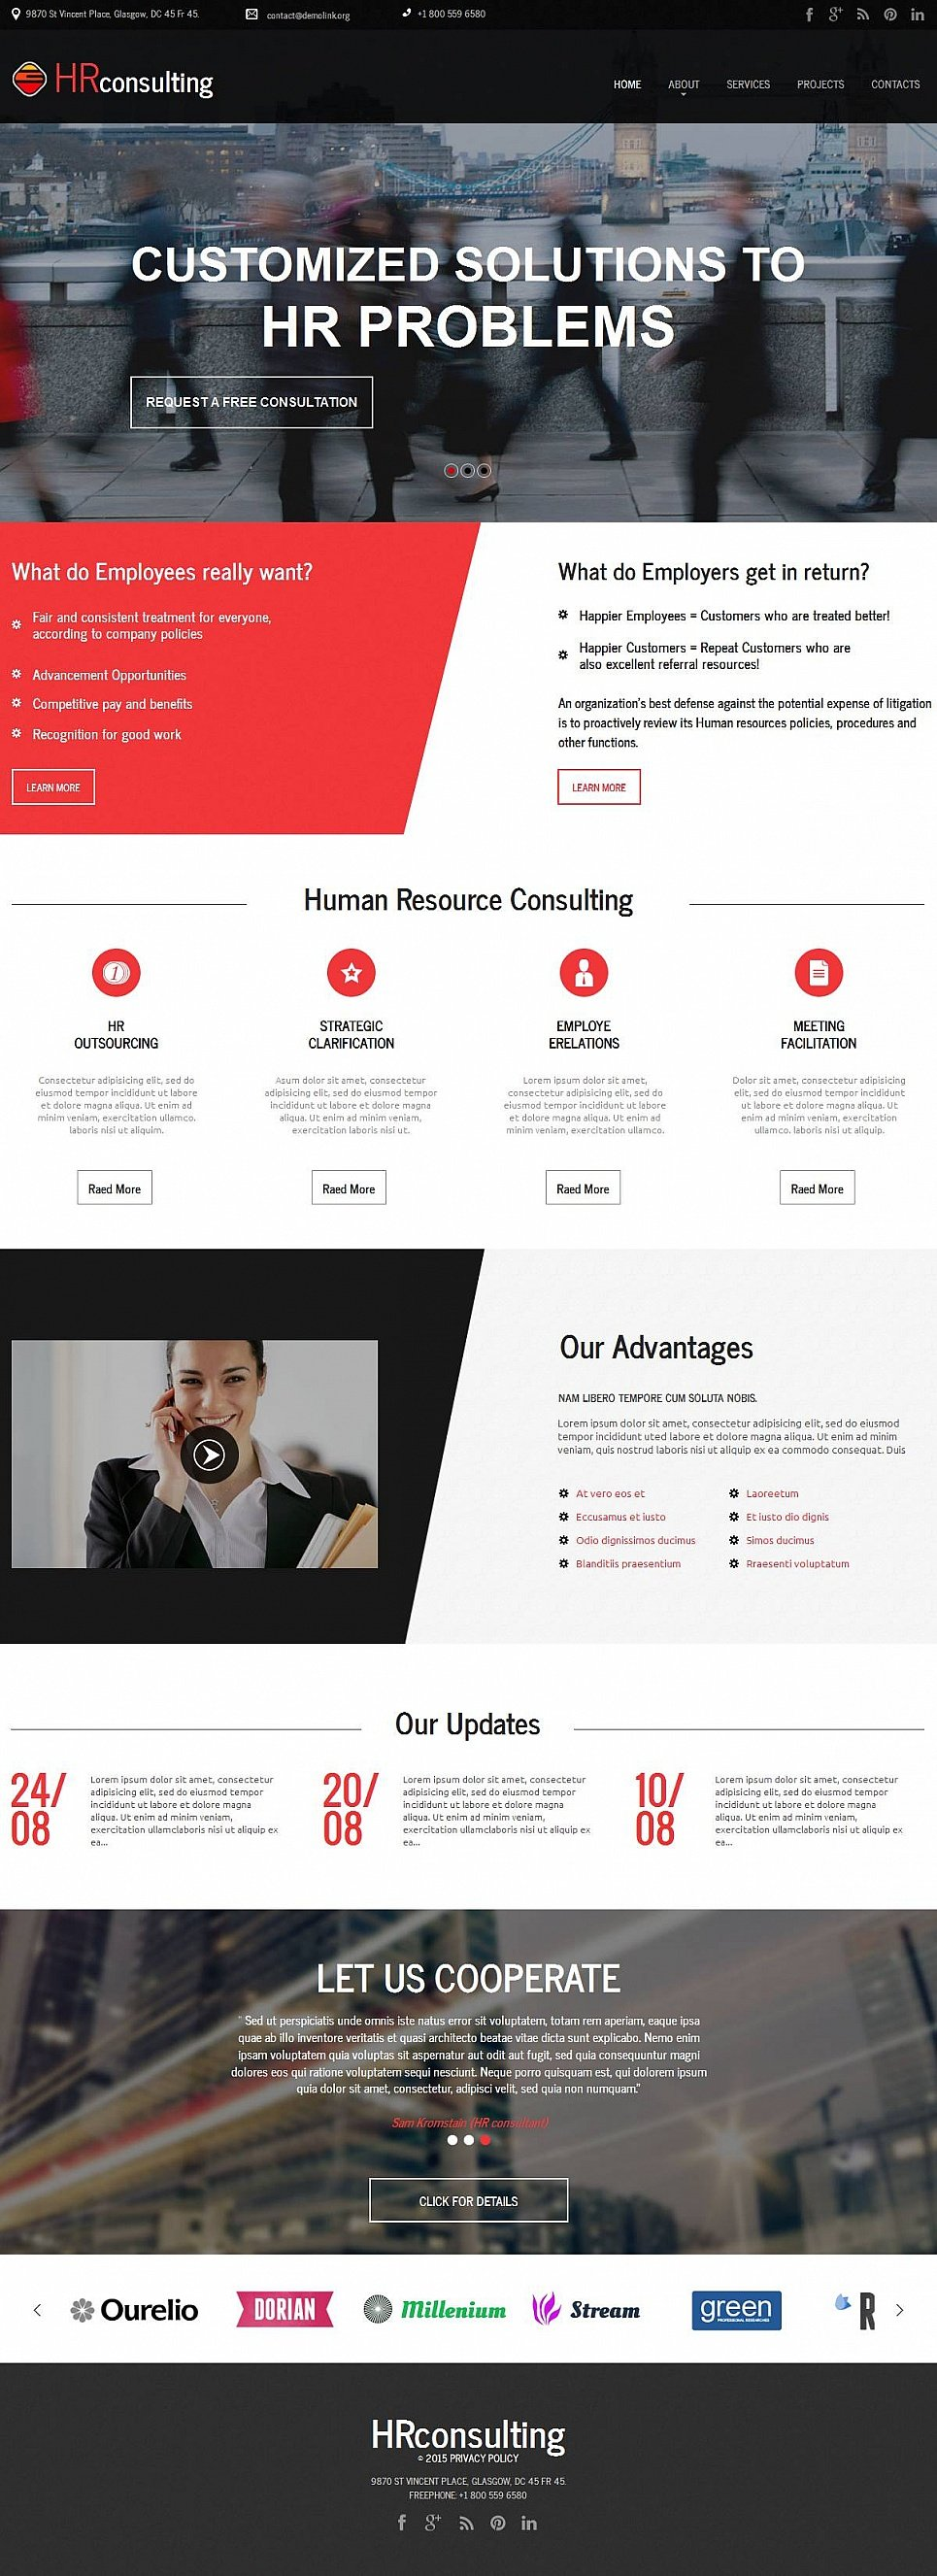 HR Consulting Website Design - image